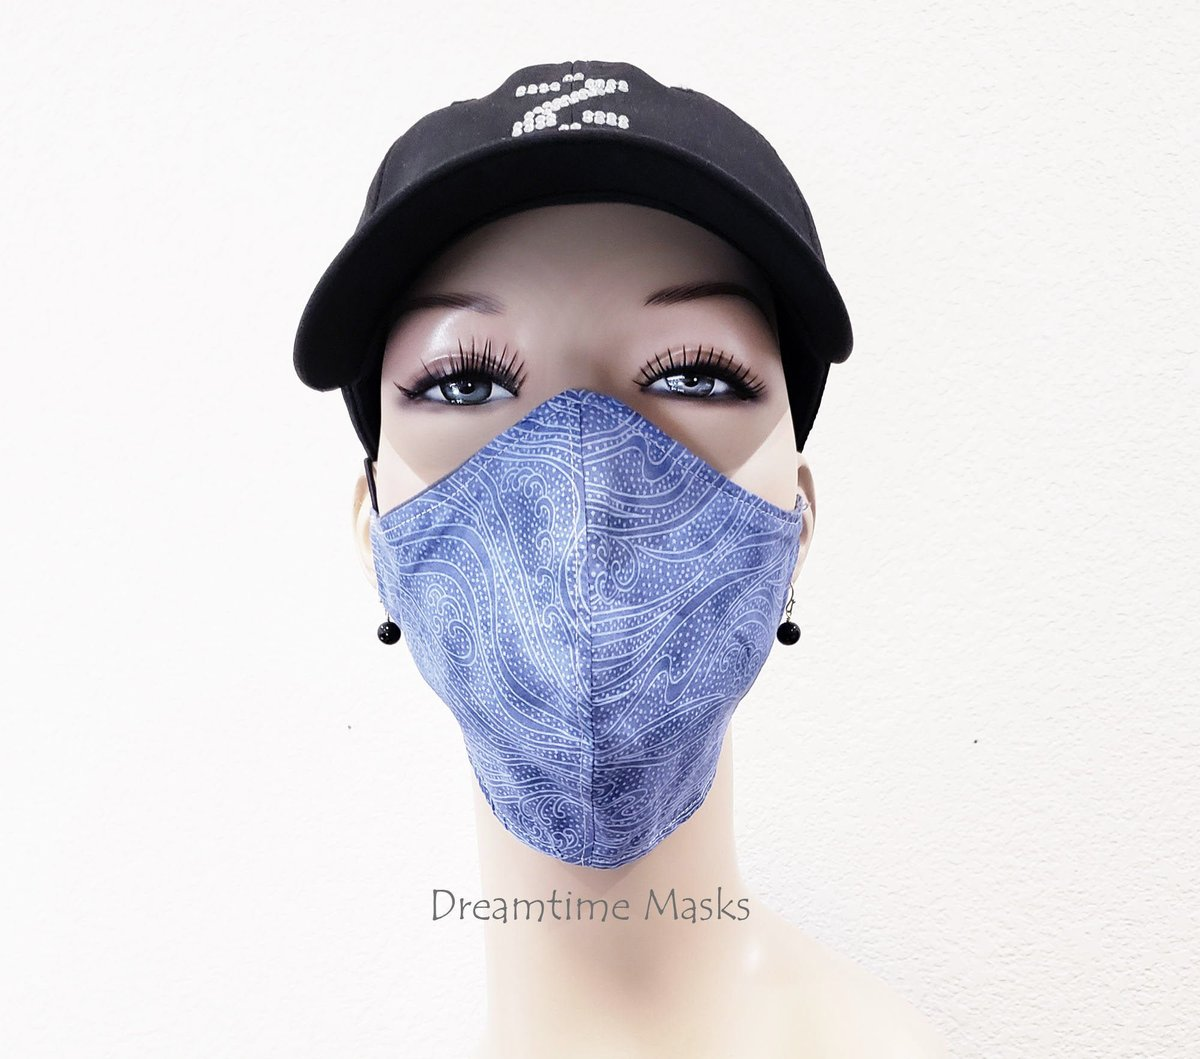 Blue Face Mask With Toggle Adjustable Over the Head Fashion Mask Blue Waves Face Covering  #staysafe #facemasks #wearthedammmask #facemask #Etsy #stayhome